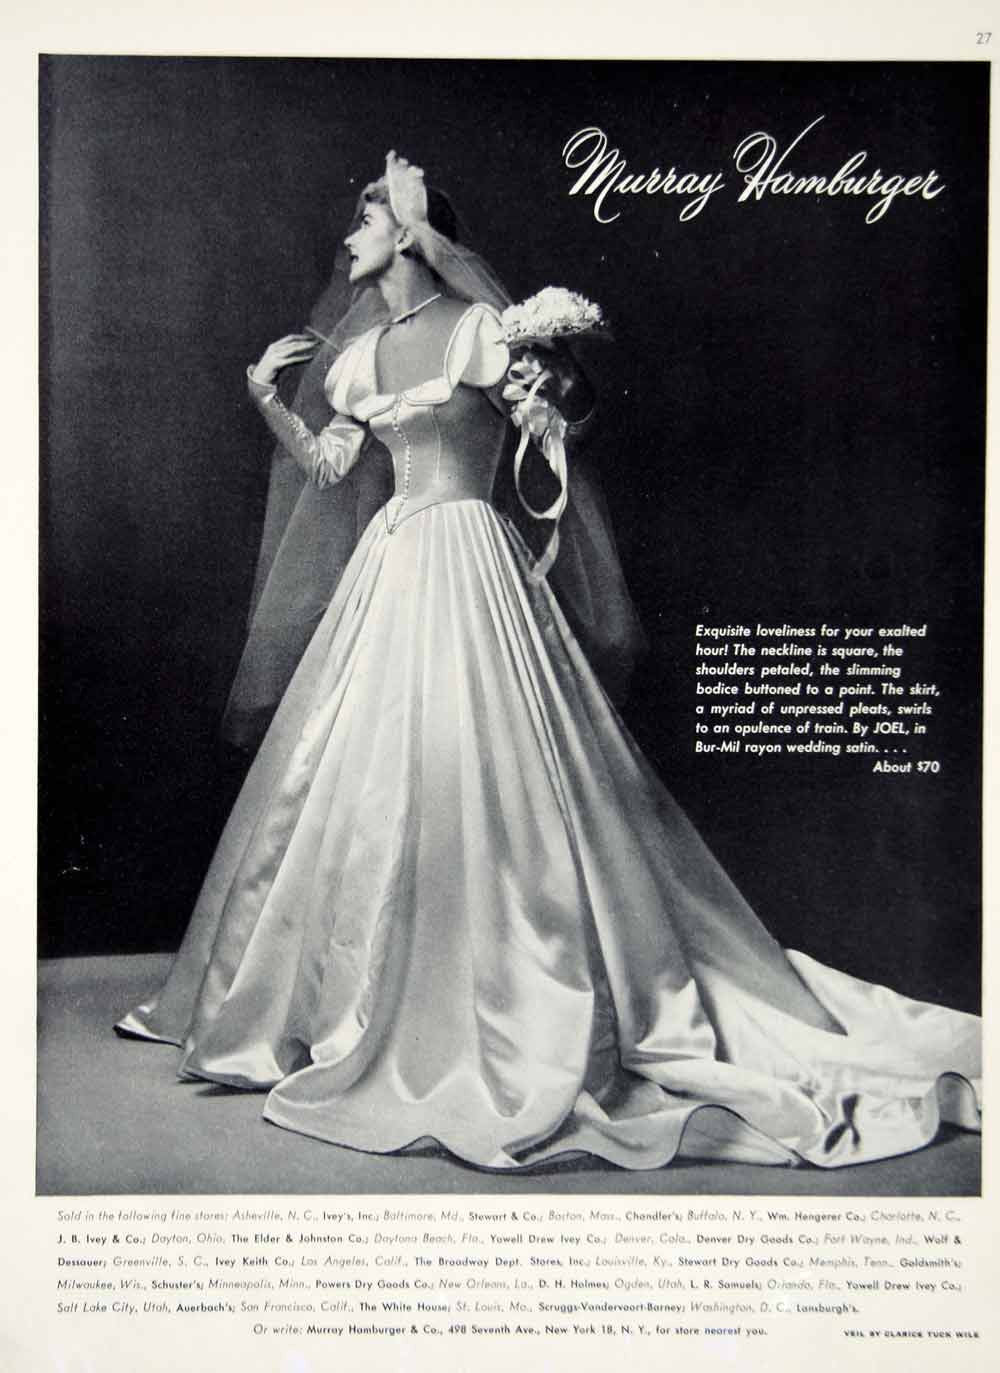 1949 Ad Vintage Murray Hamburger Satin Wedding Dress Bride Bridal Gown –  Period Paper